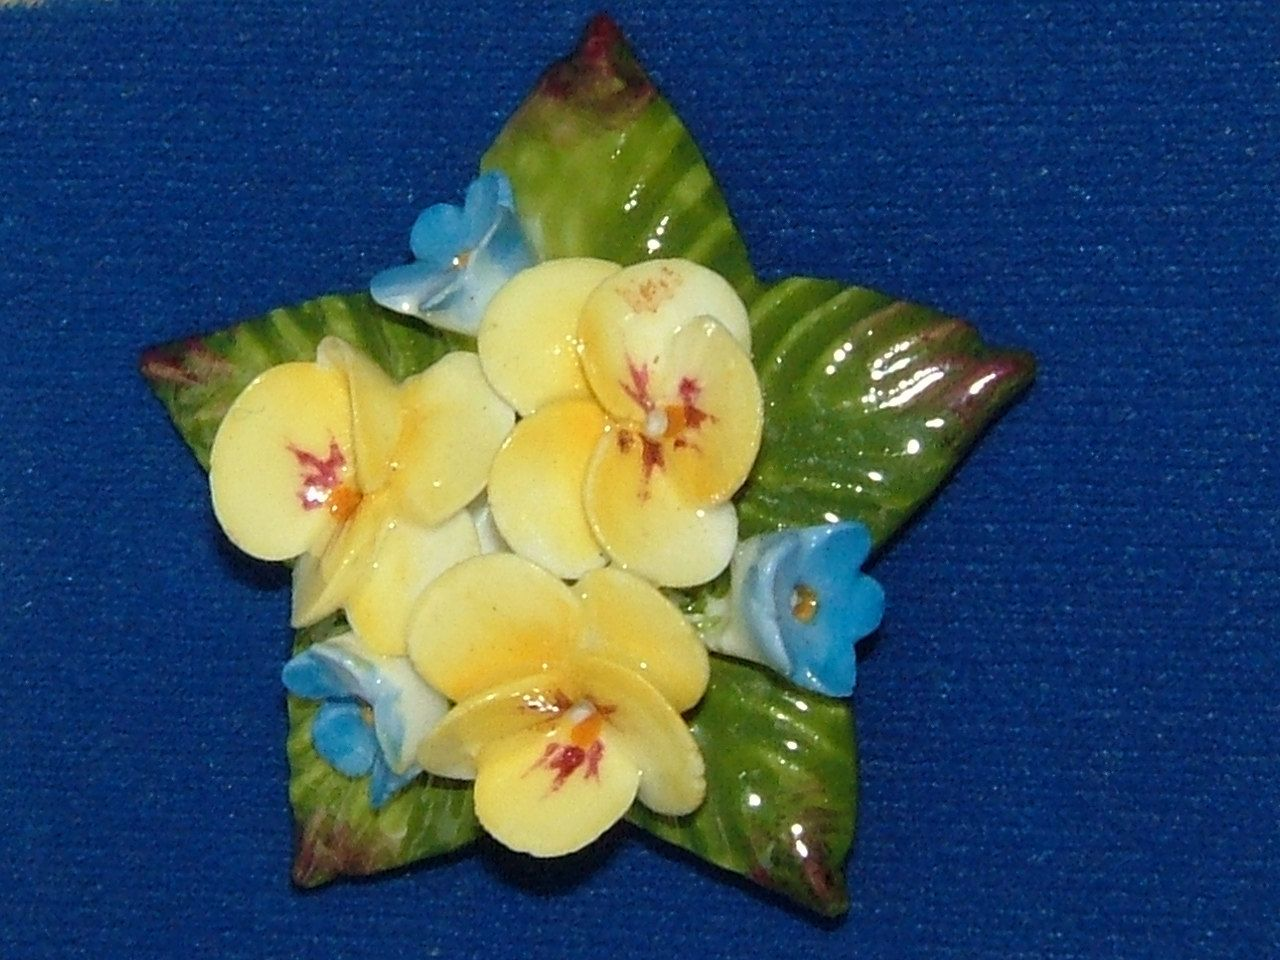 Provided Vintage Brooch Porcelain China Flower From 1930 Pins & Brooches